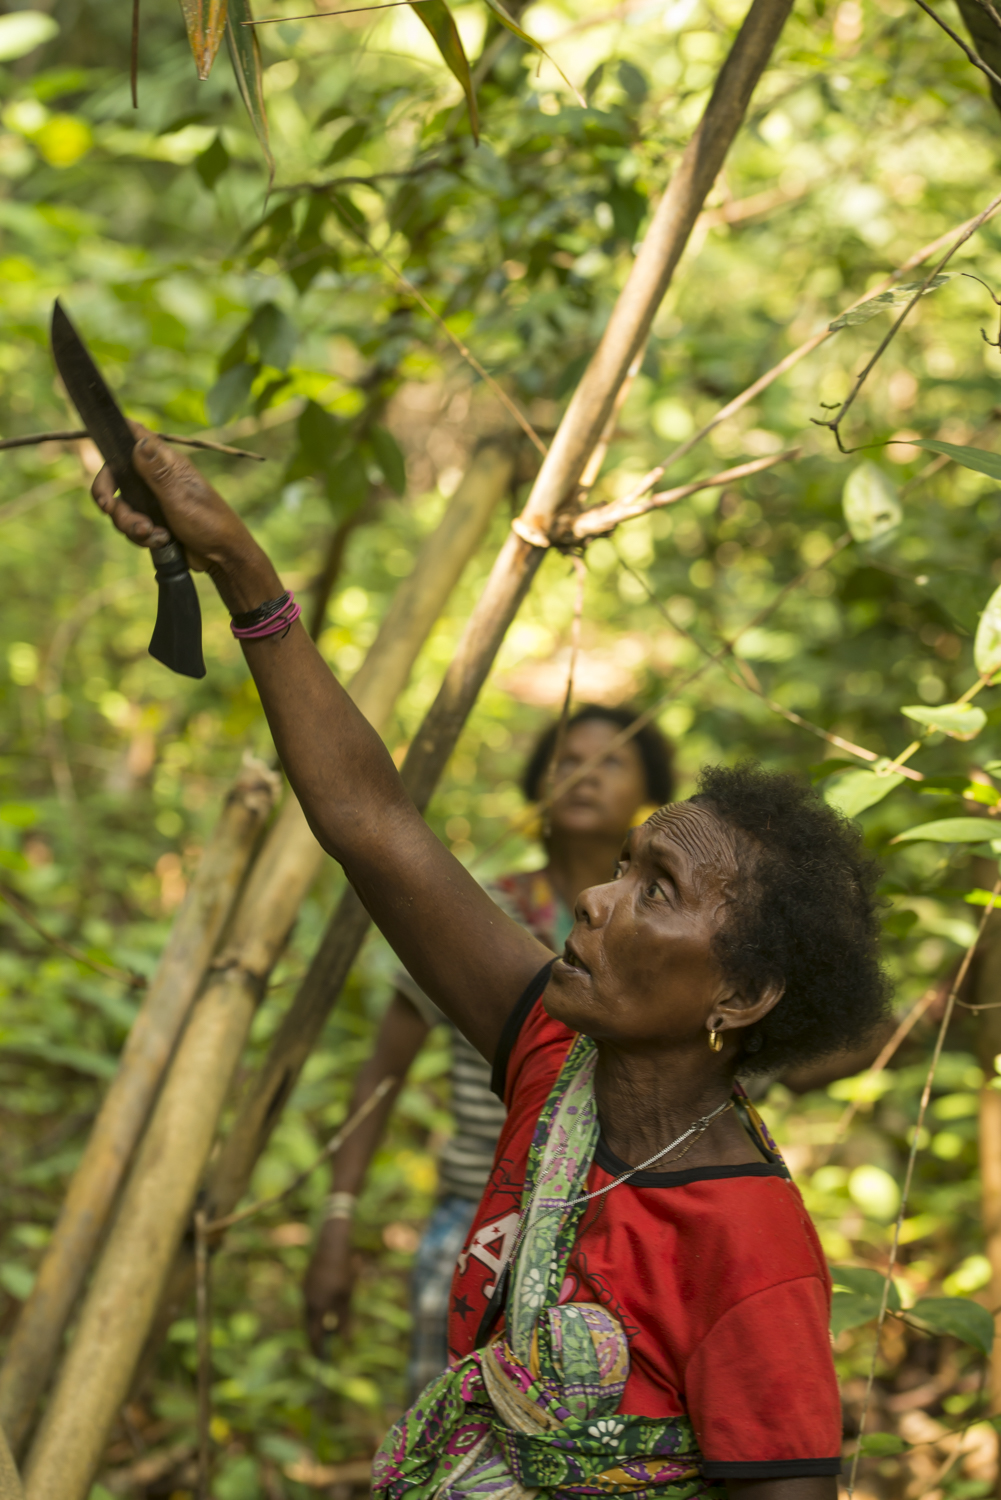 One of the Batek ladies foraging in the jungle.